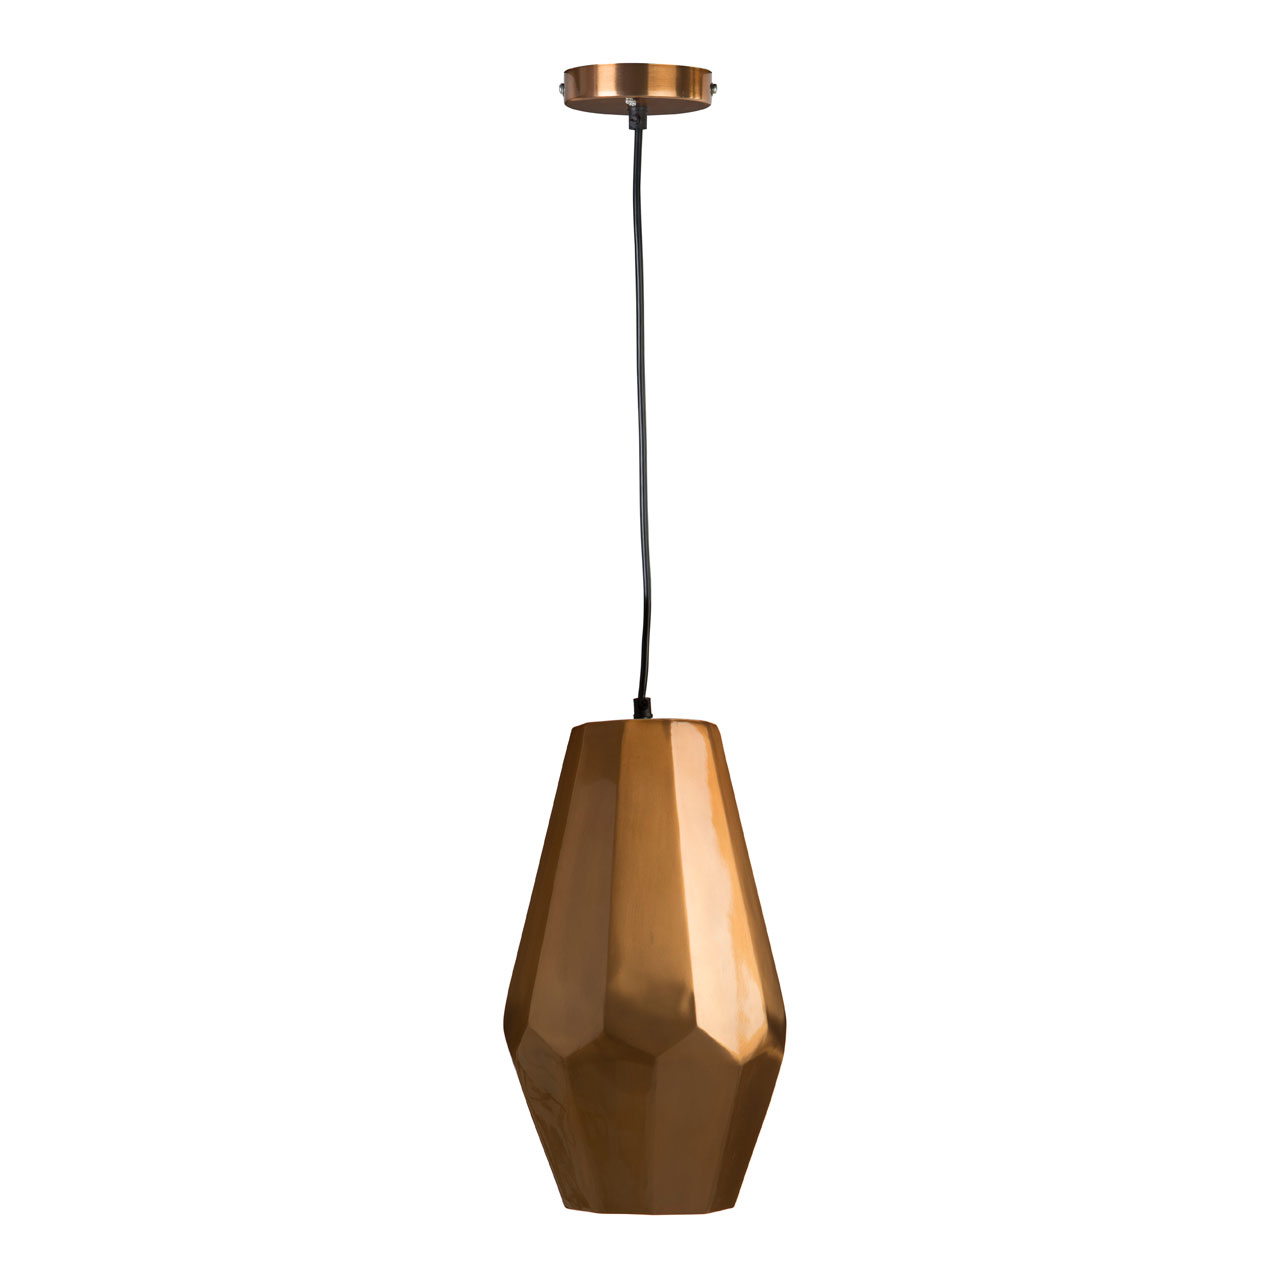 Copper Geometric Ceiling Light